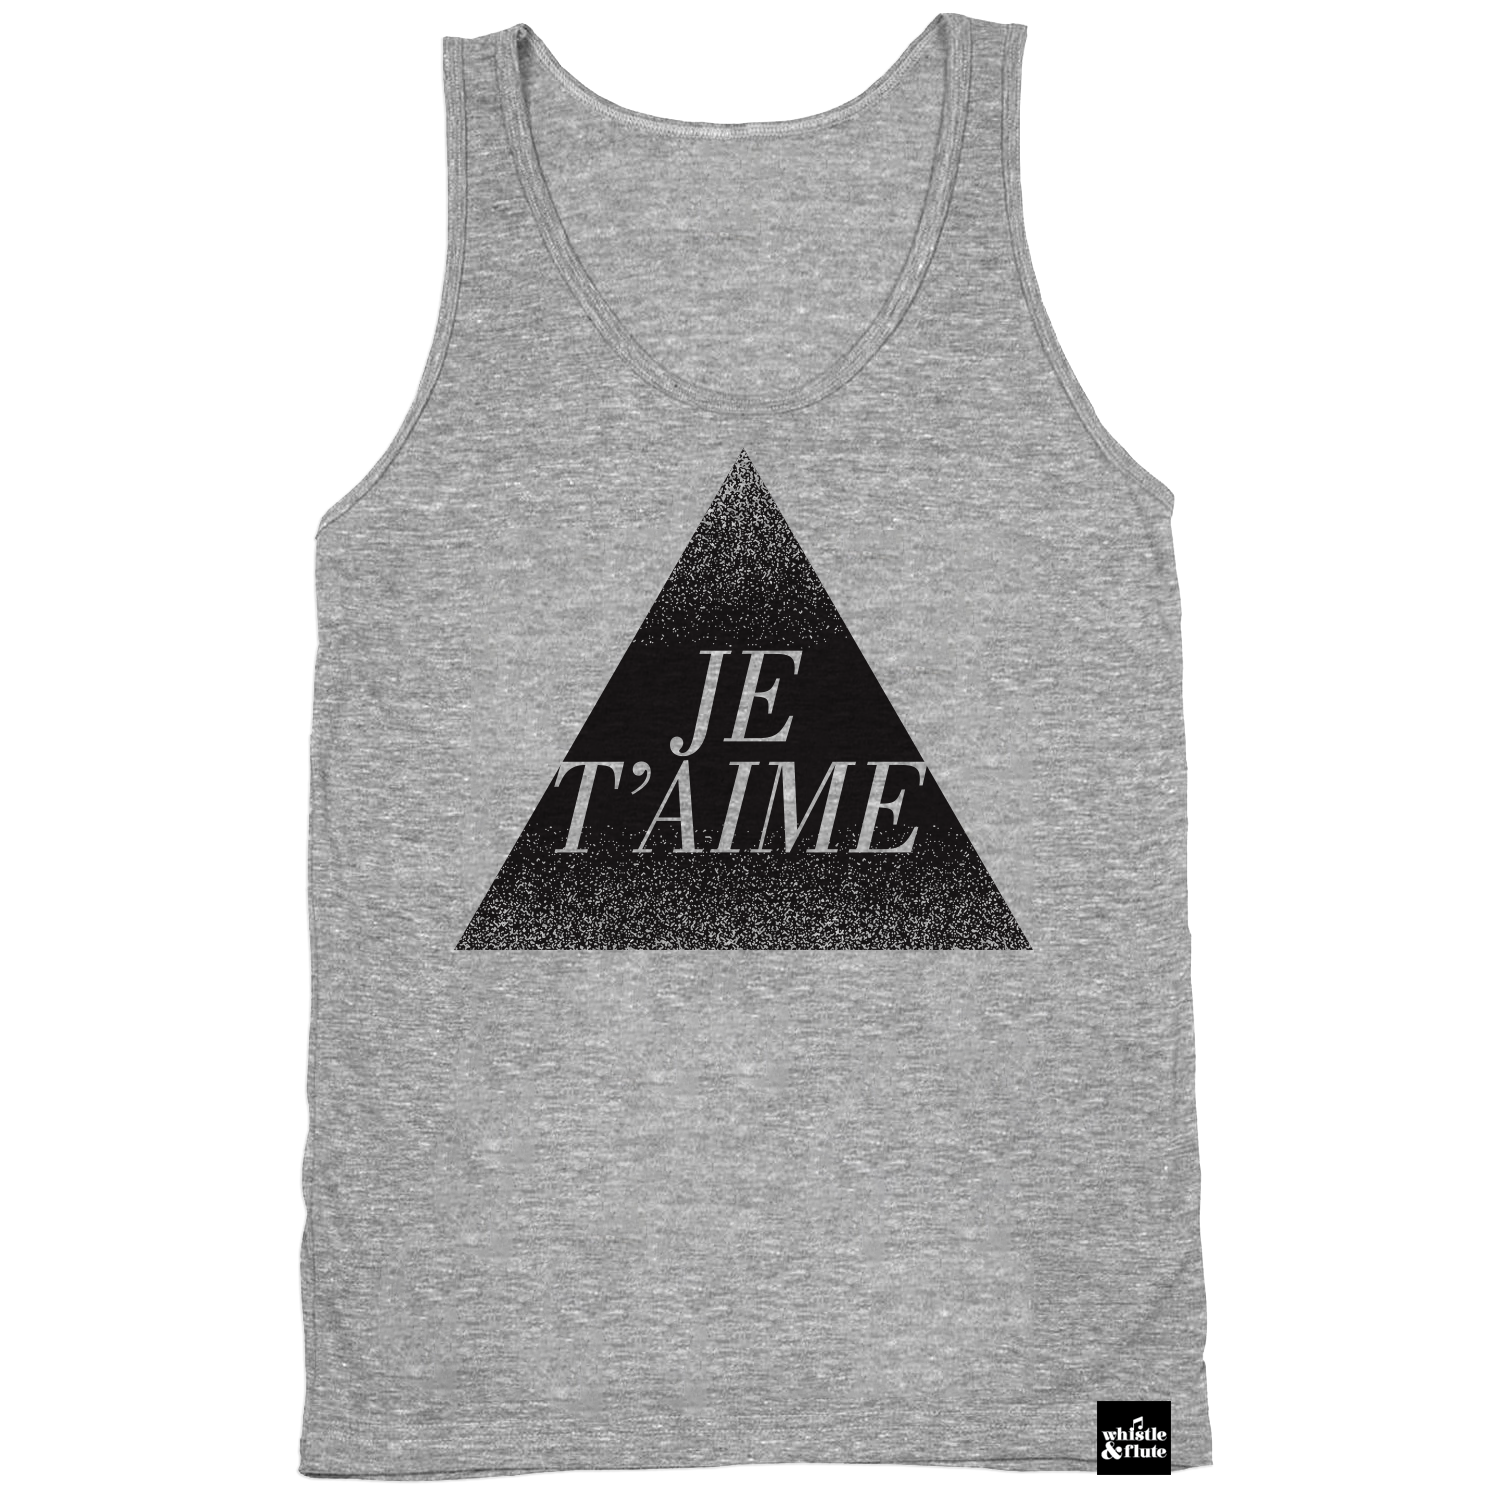 Je T'aime Tank Top Adult Unisex - Athletic Grey